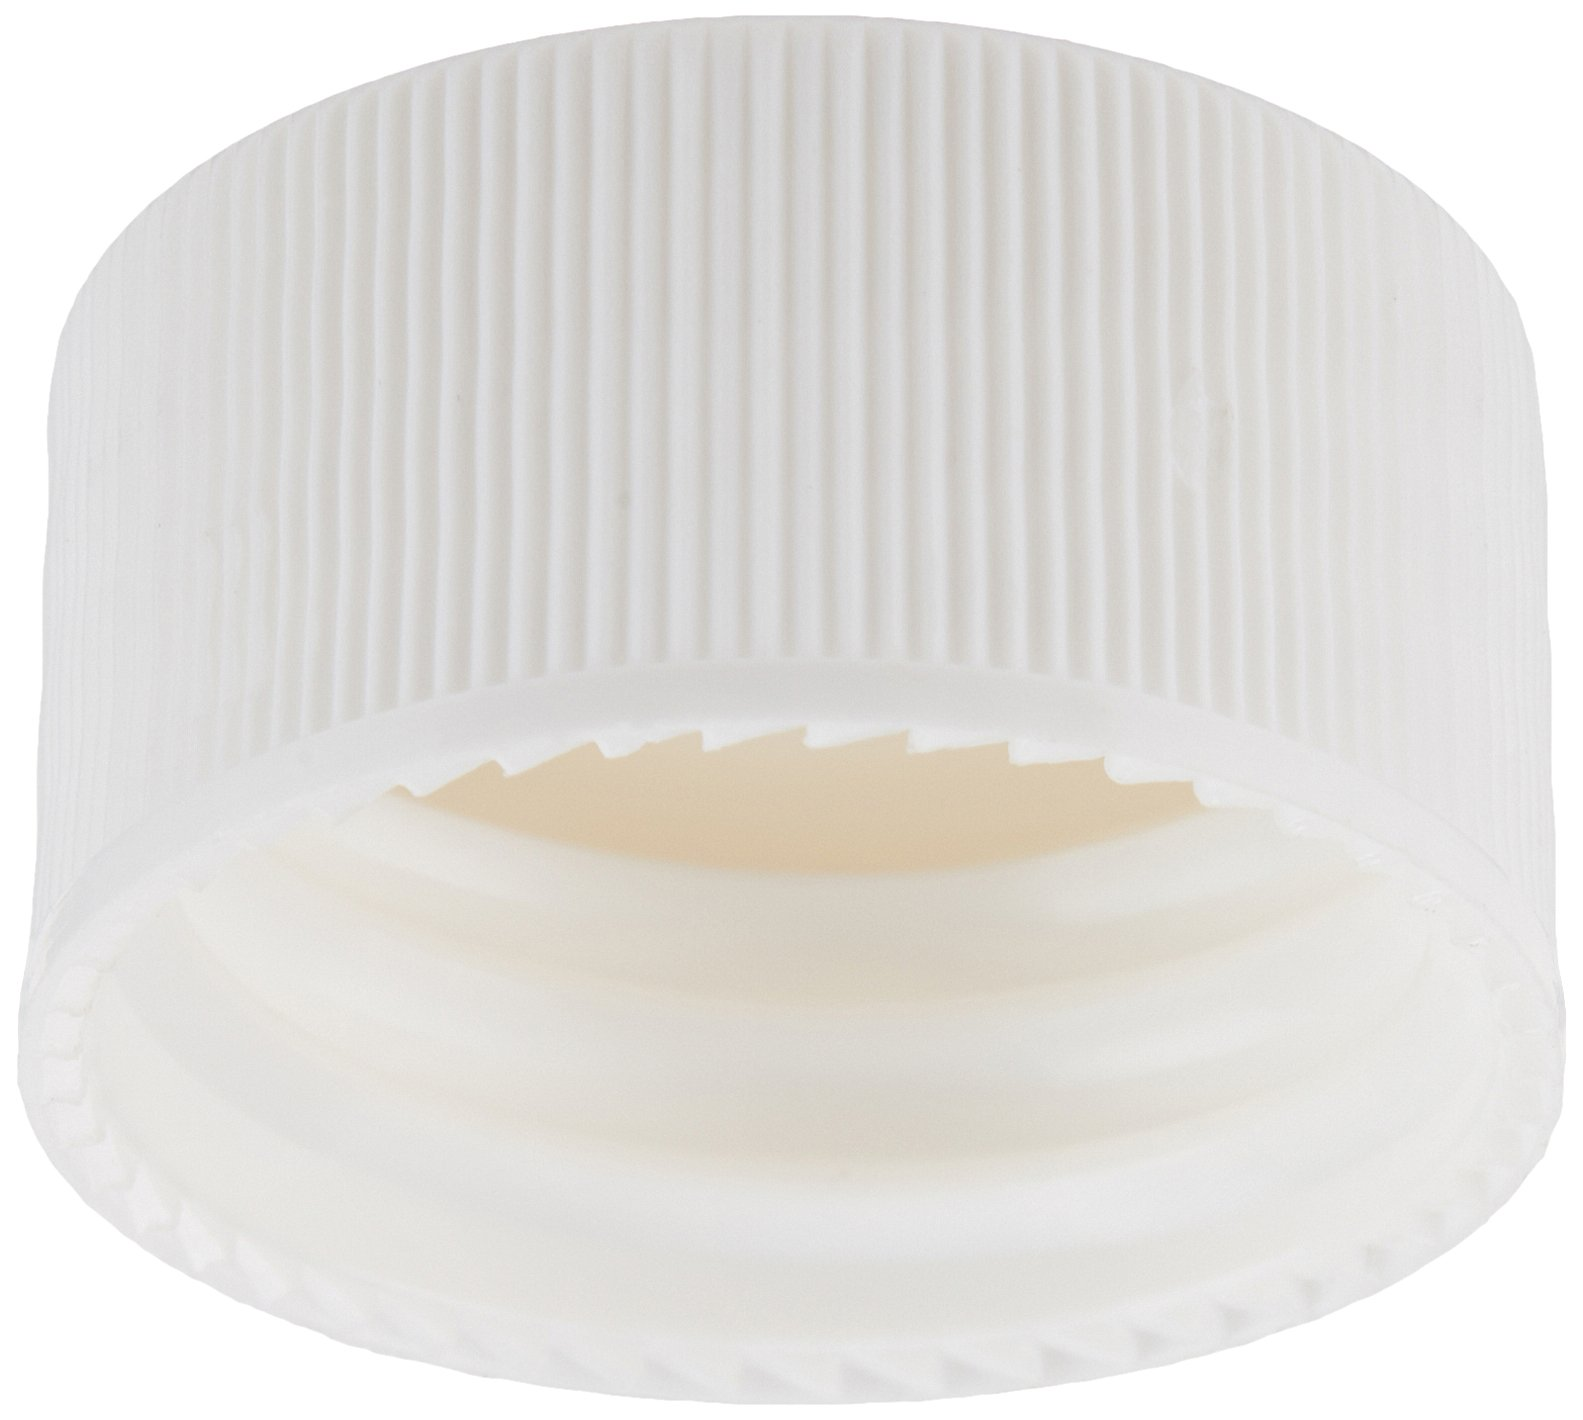 JG Finneran 34-527/144 Polypropylene Open Hole Closure with Fixed 0.125'' PTFE/Silicone Liner for Environmental VOA Vials, 24-414mm Cap Size, White (Pack of 144)